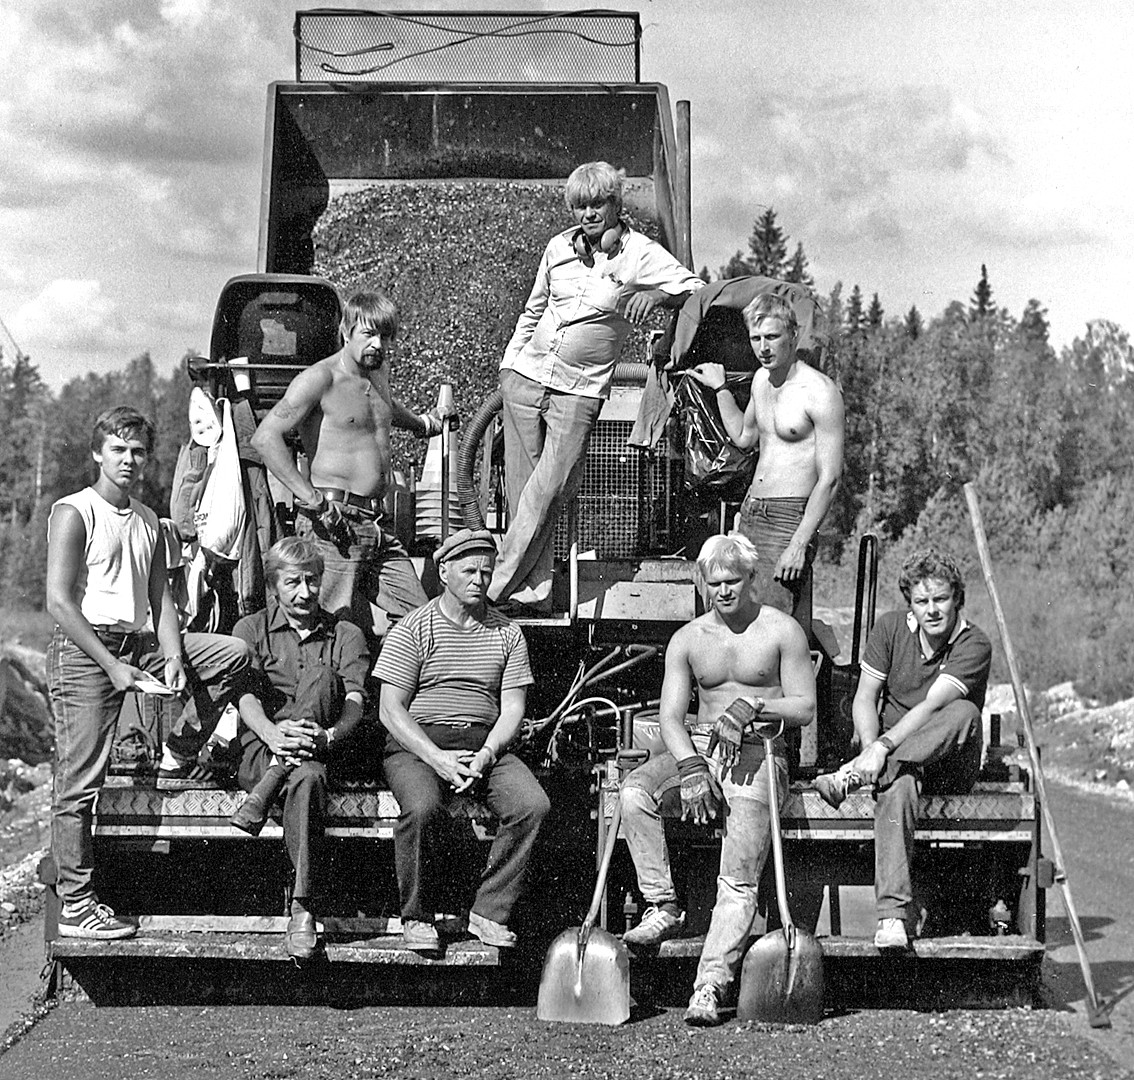 27 Road workers. Outokumpu 1985